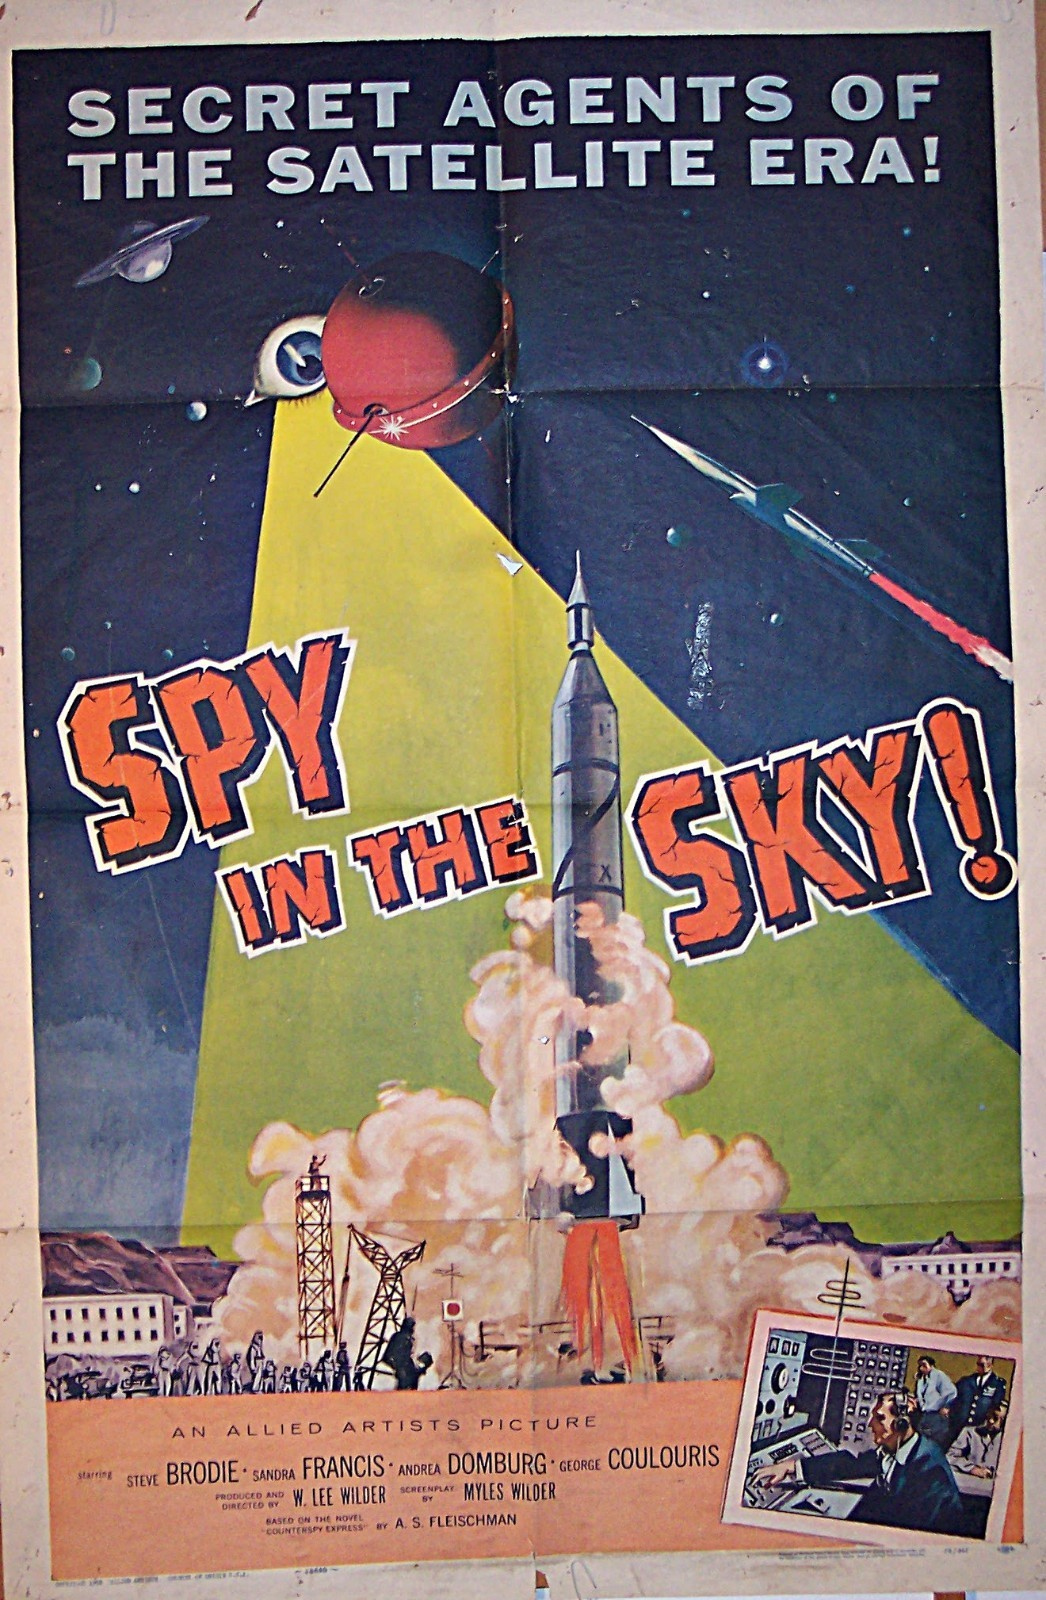 Pictured is a US one-sheet promotional poster for the 1958 W. Lee Wilder film Spy in the Sky starring Steve Brodie based on the novel by Albert Sidney Fleischman.